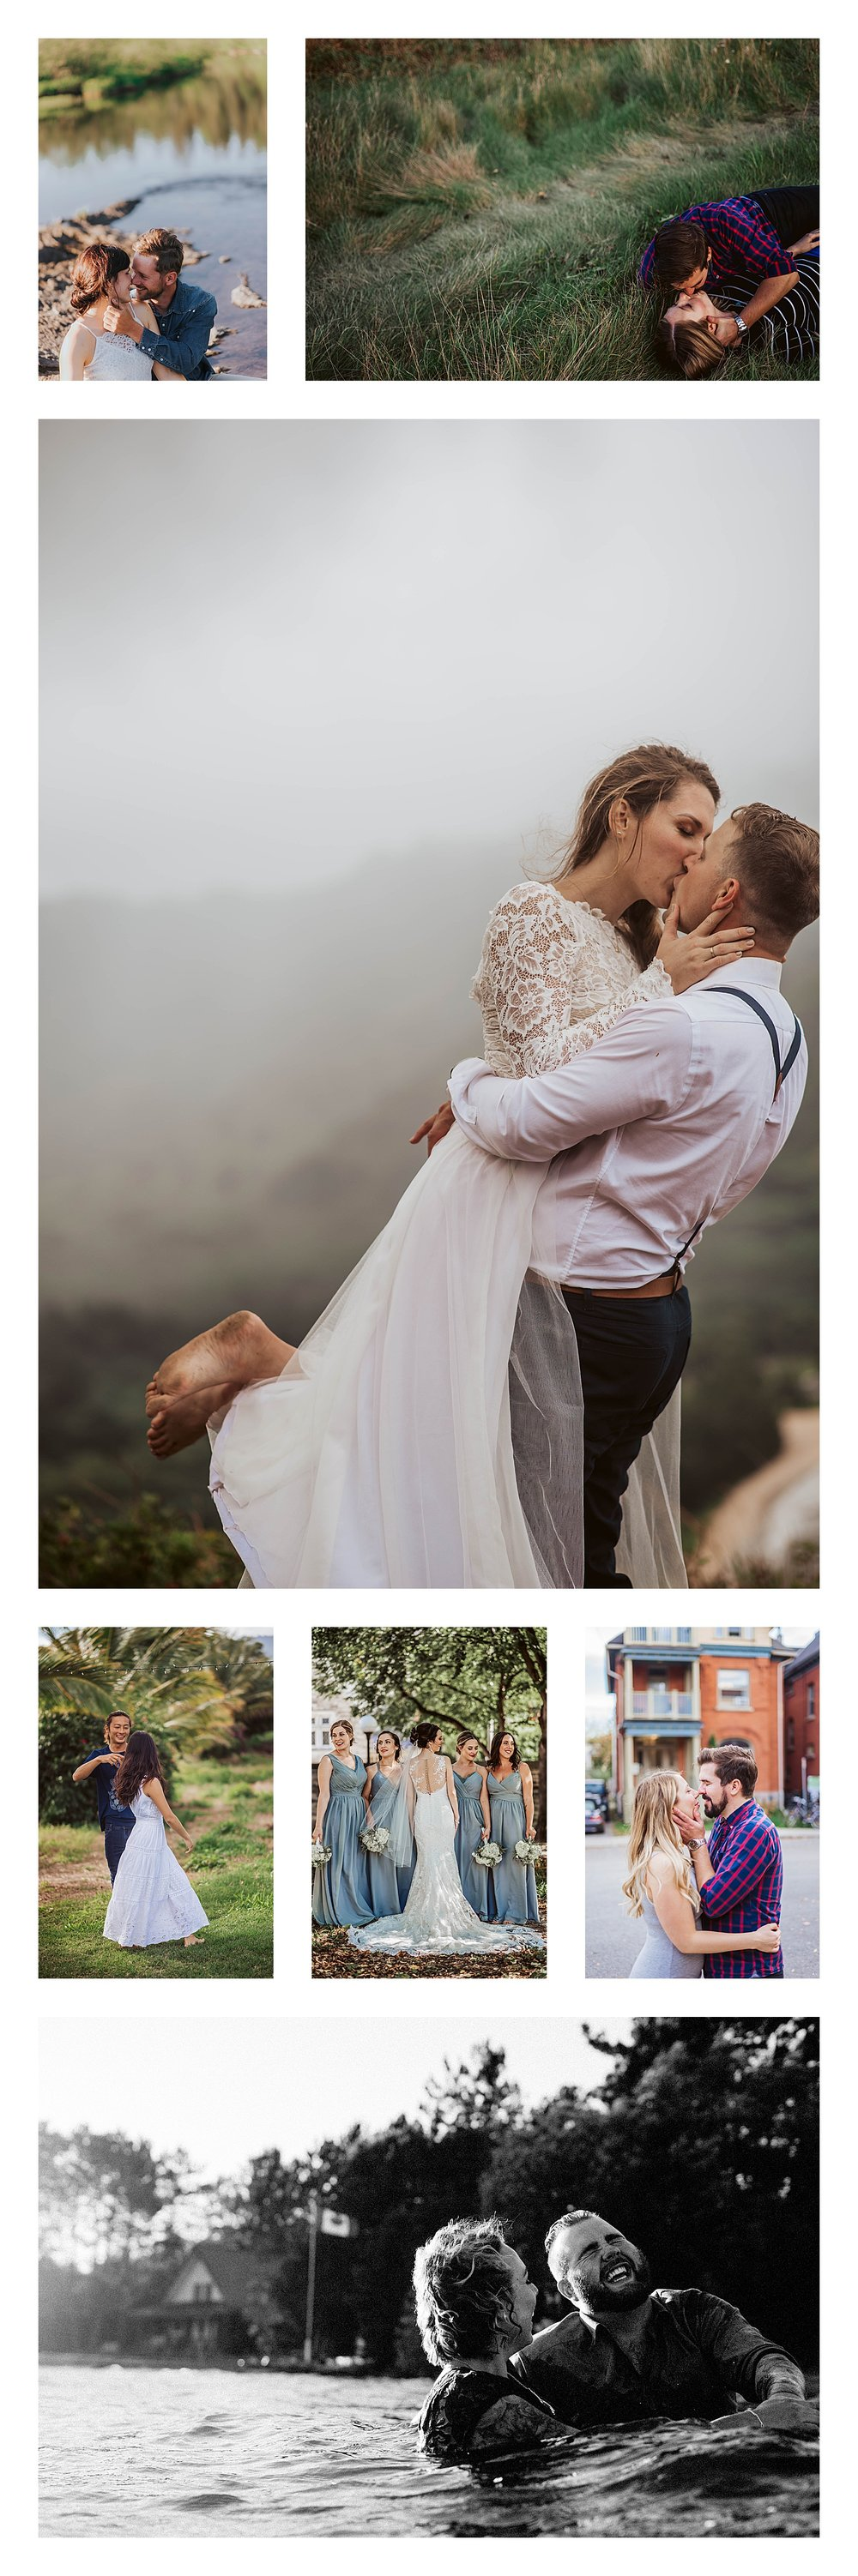 Romantic and Intimate Wedding and Elopement Photography